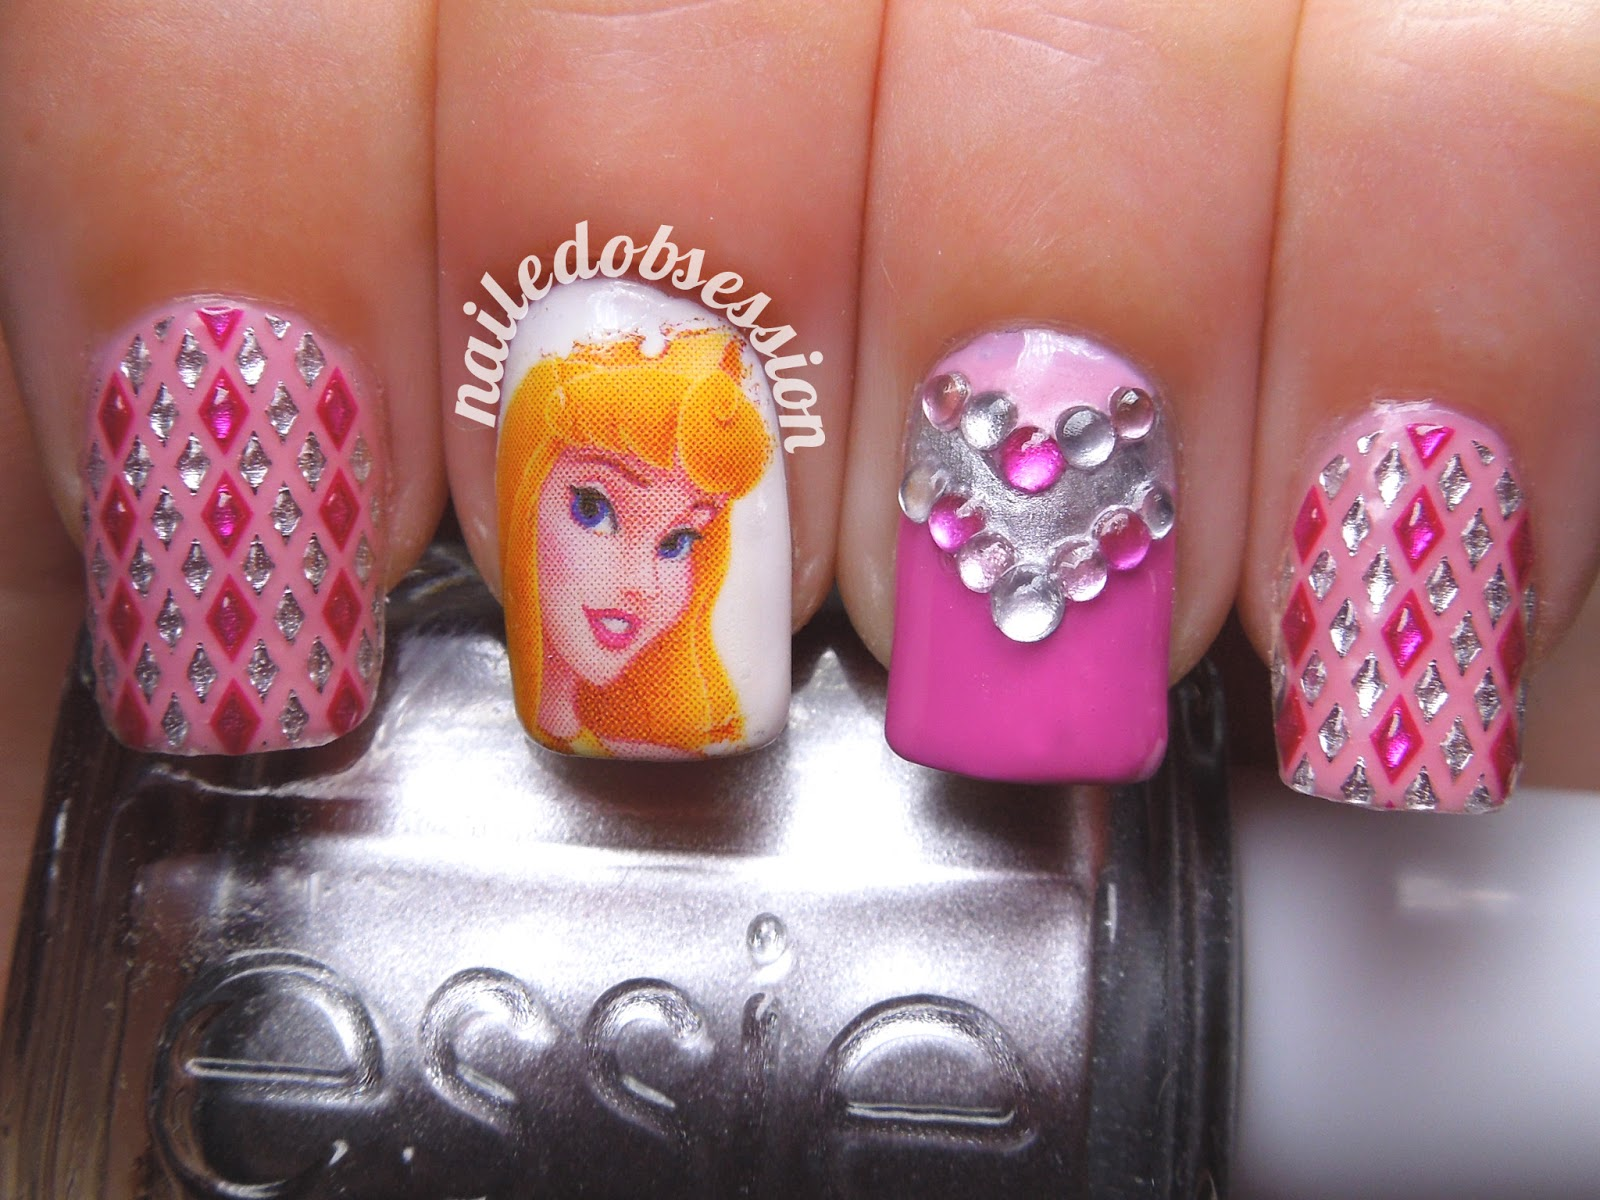 sleeping beauty nails - Sleeping Beauty Photo (36901406) - Fanpop